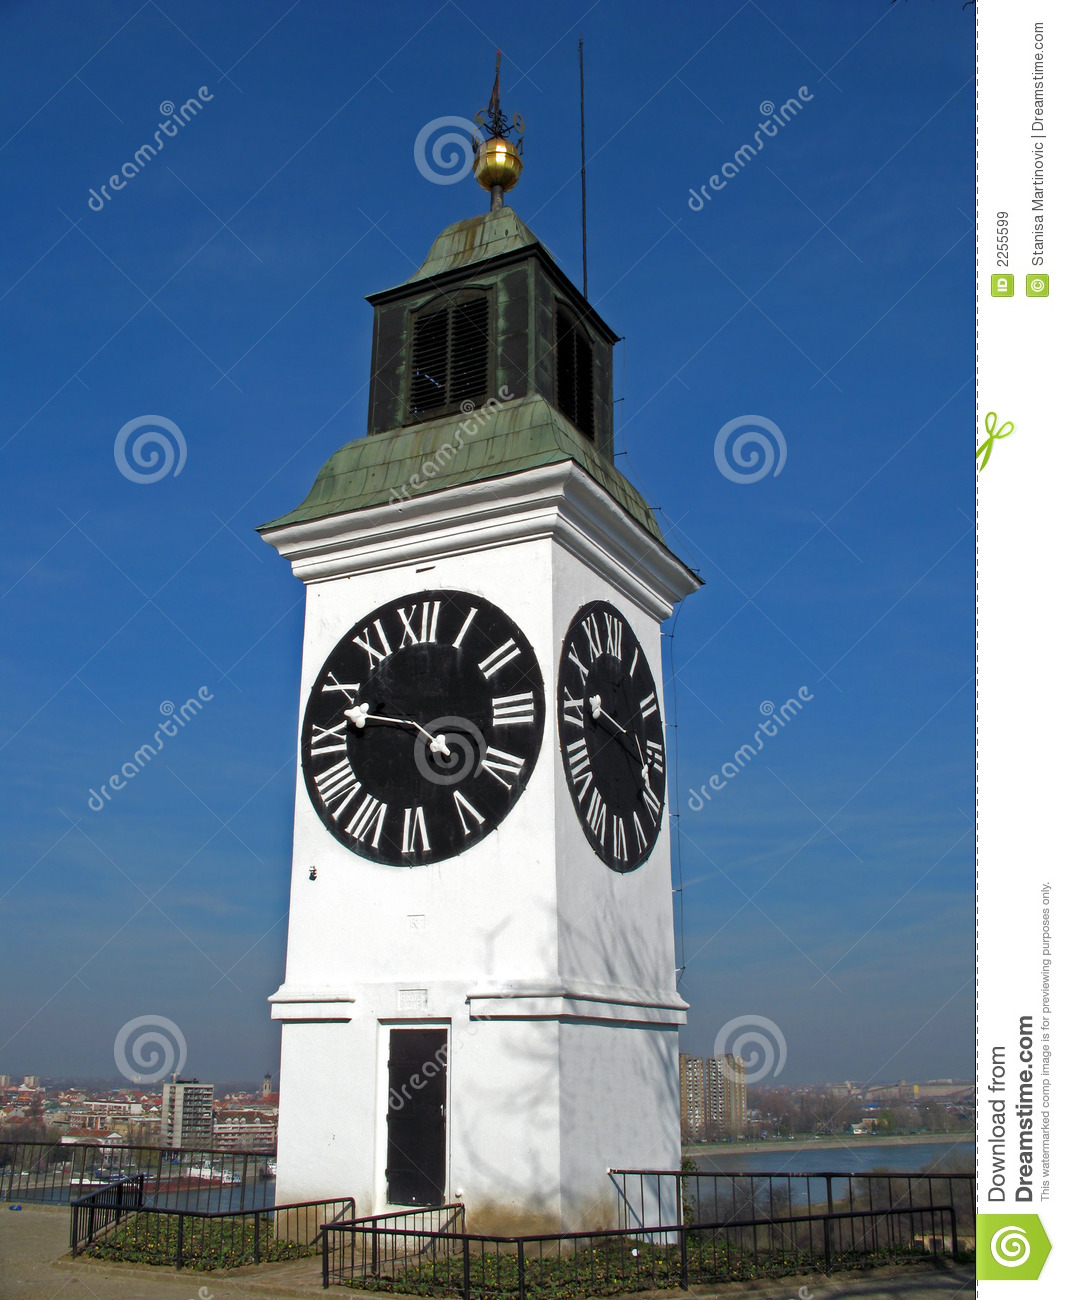 Clock tower